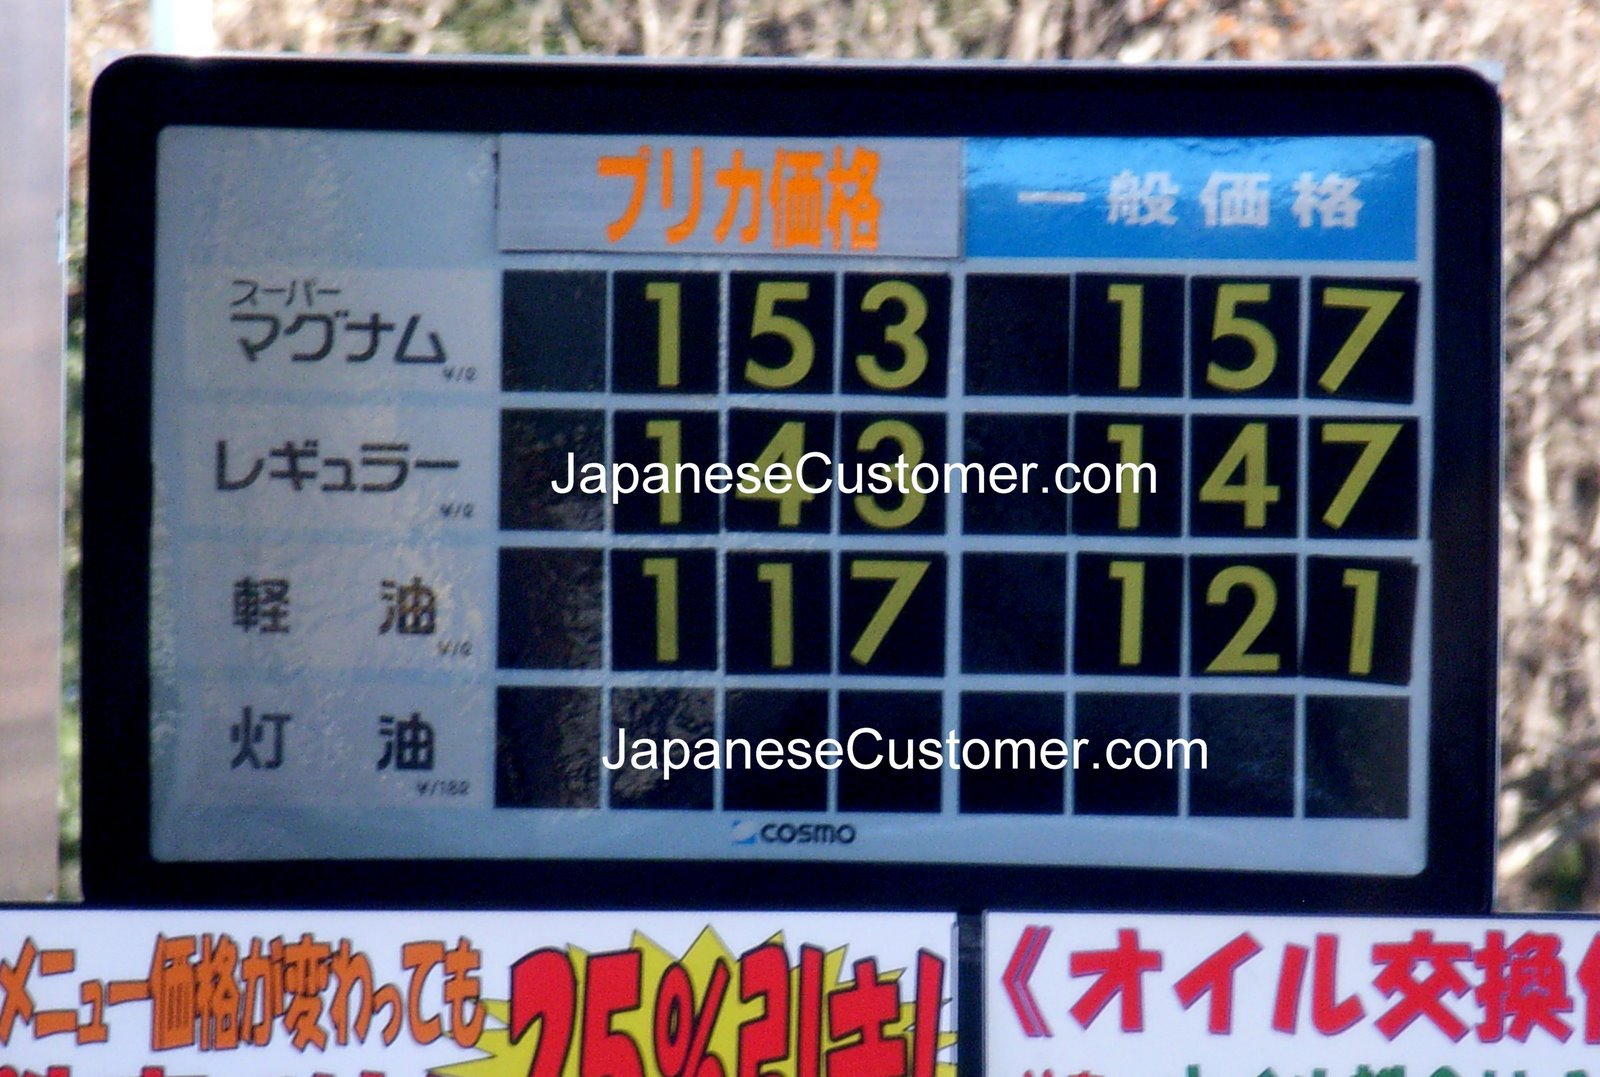 Gasoline prices Japan Copyright 2007